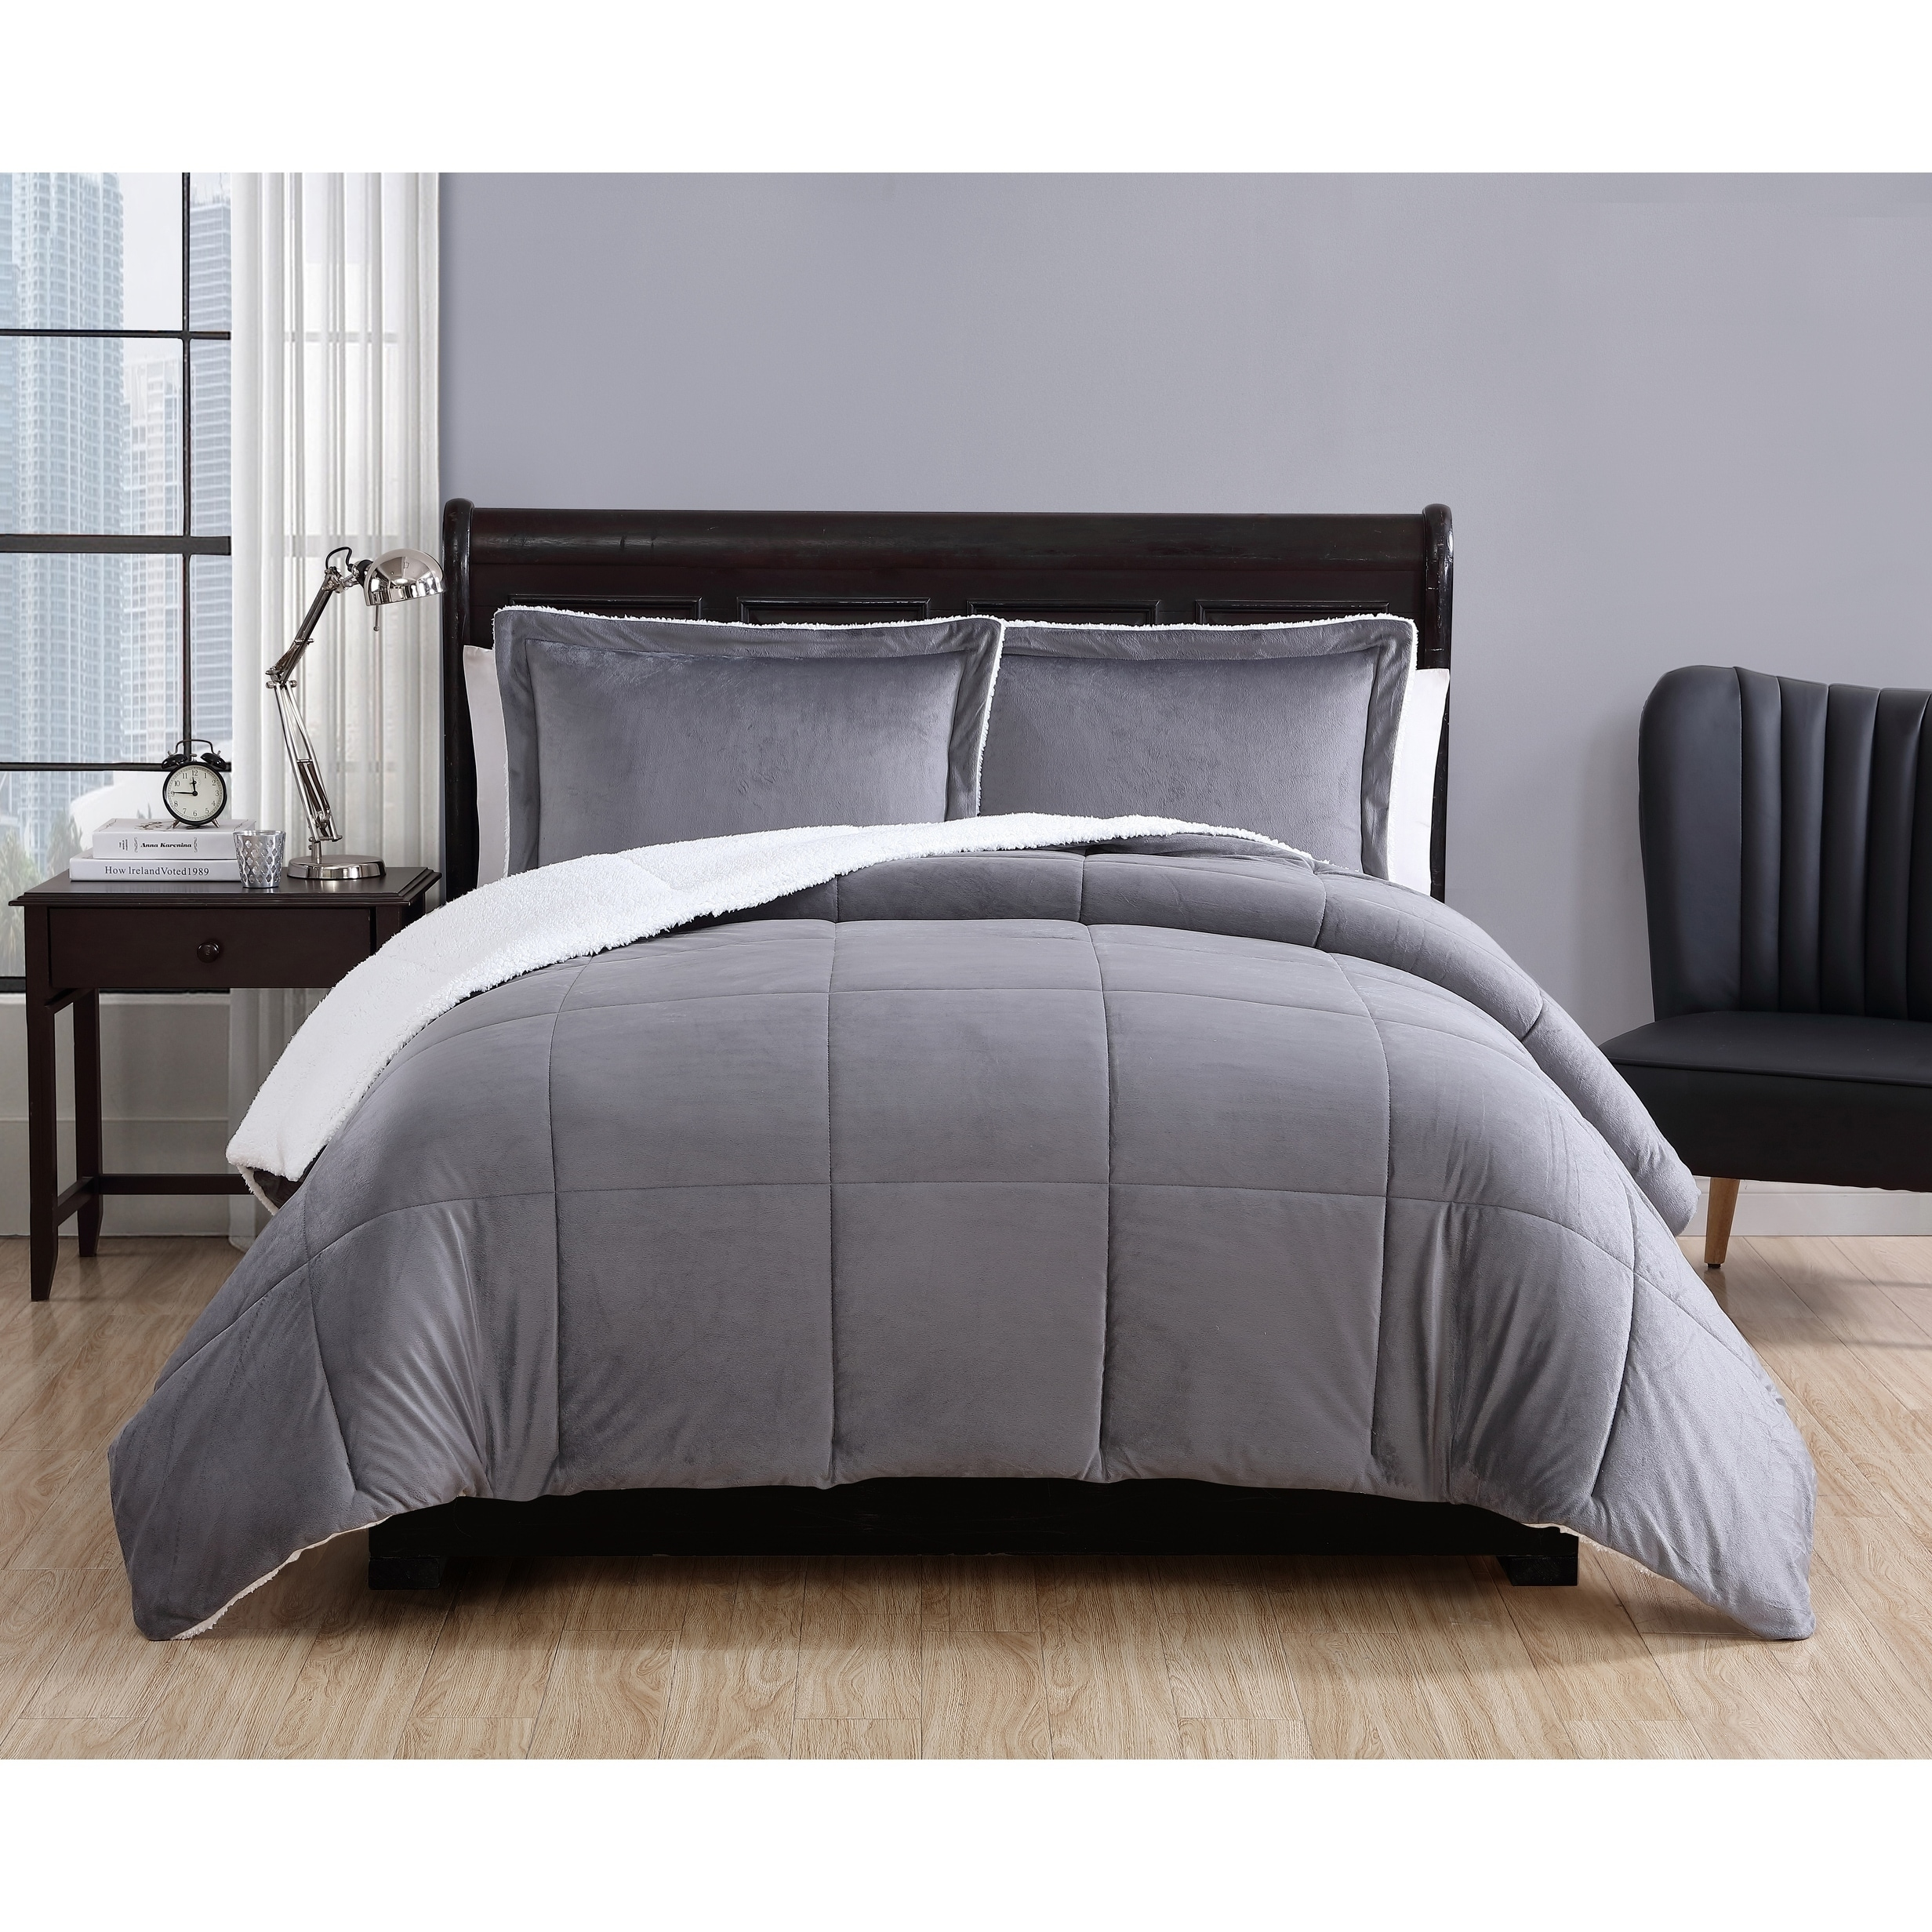 comforter shipping on free bath product a in square bag overstock bedding jefferson bed com set